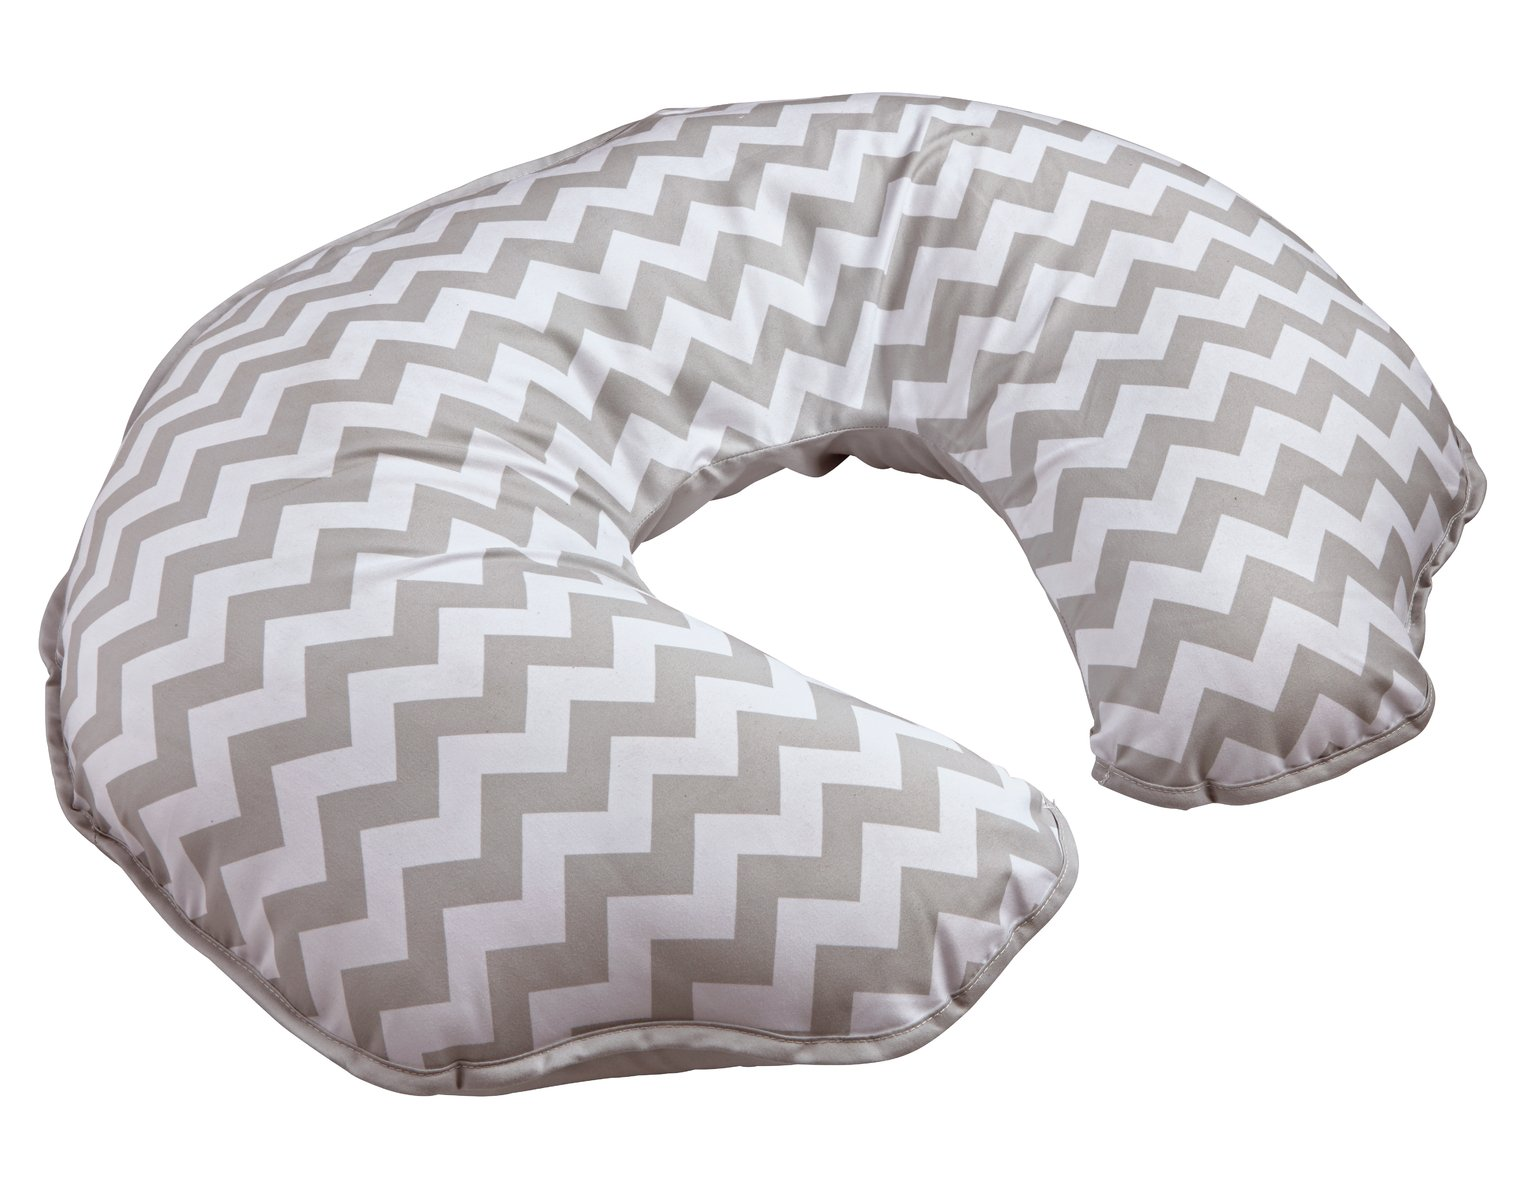 Cuggl Maternity Feeding Pillow